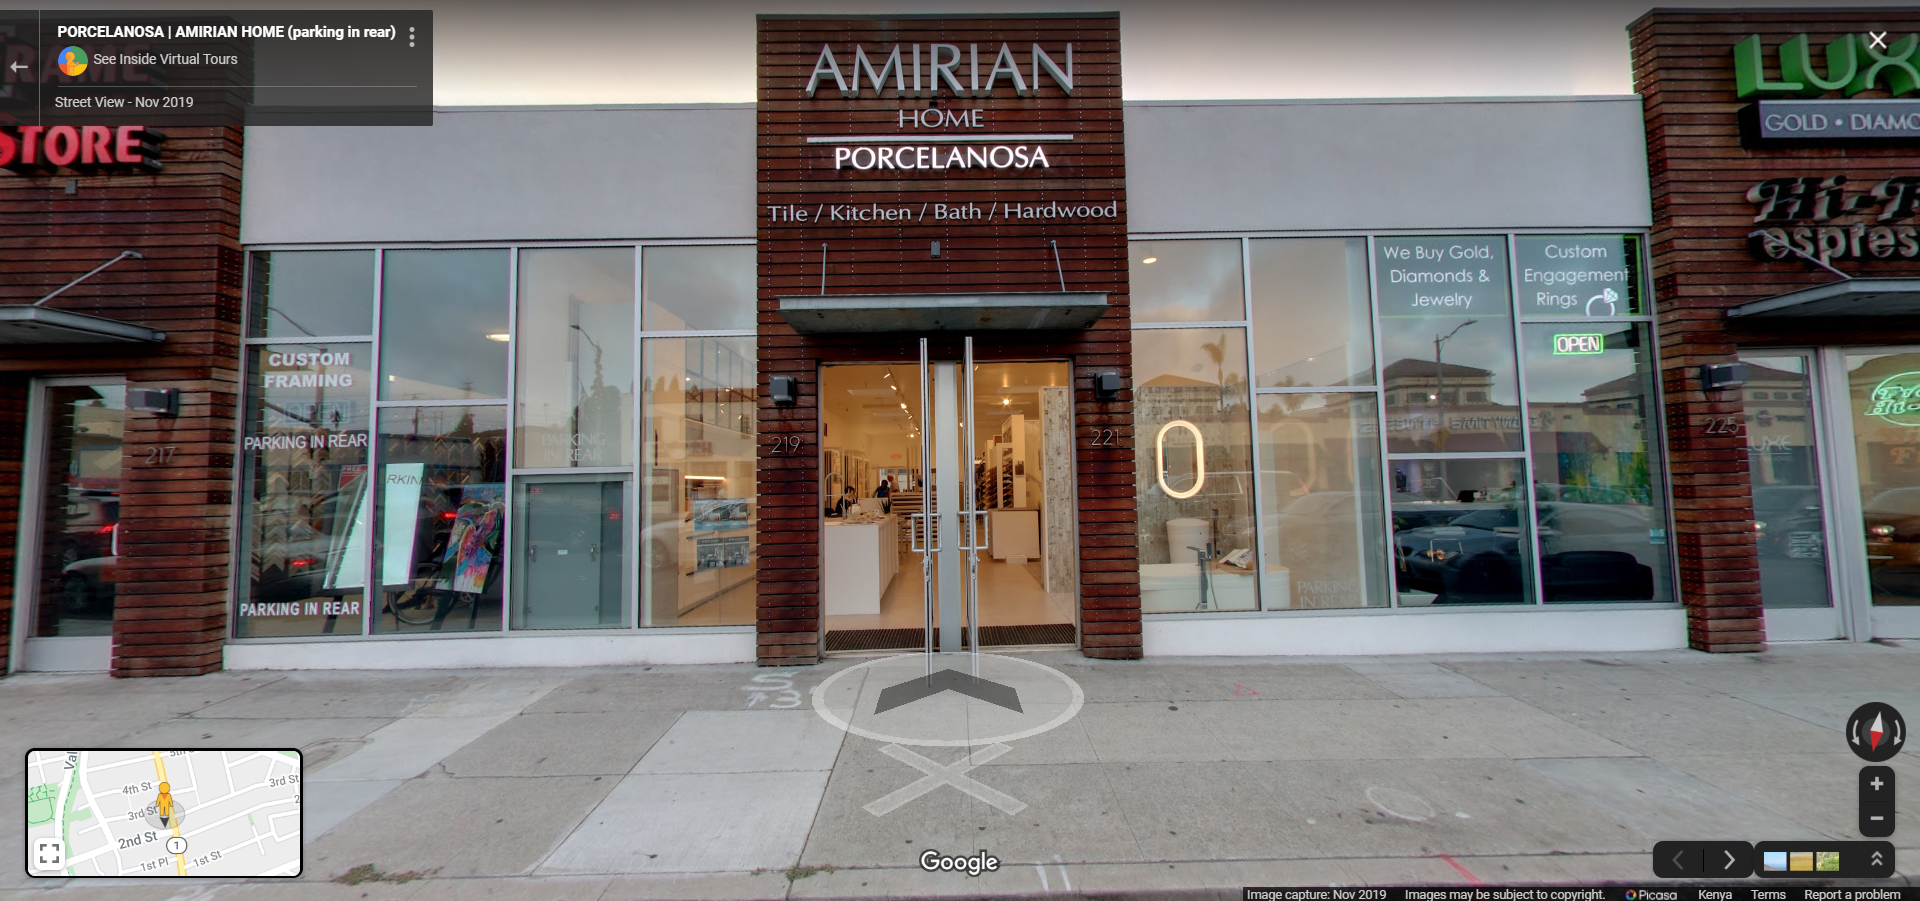 PORCELANOSA AMIRIAN HOME - Hermosa Beach